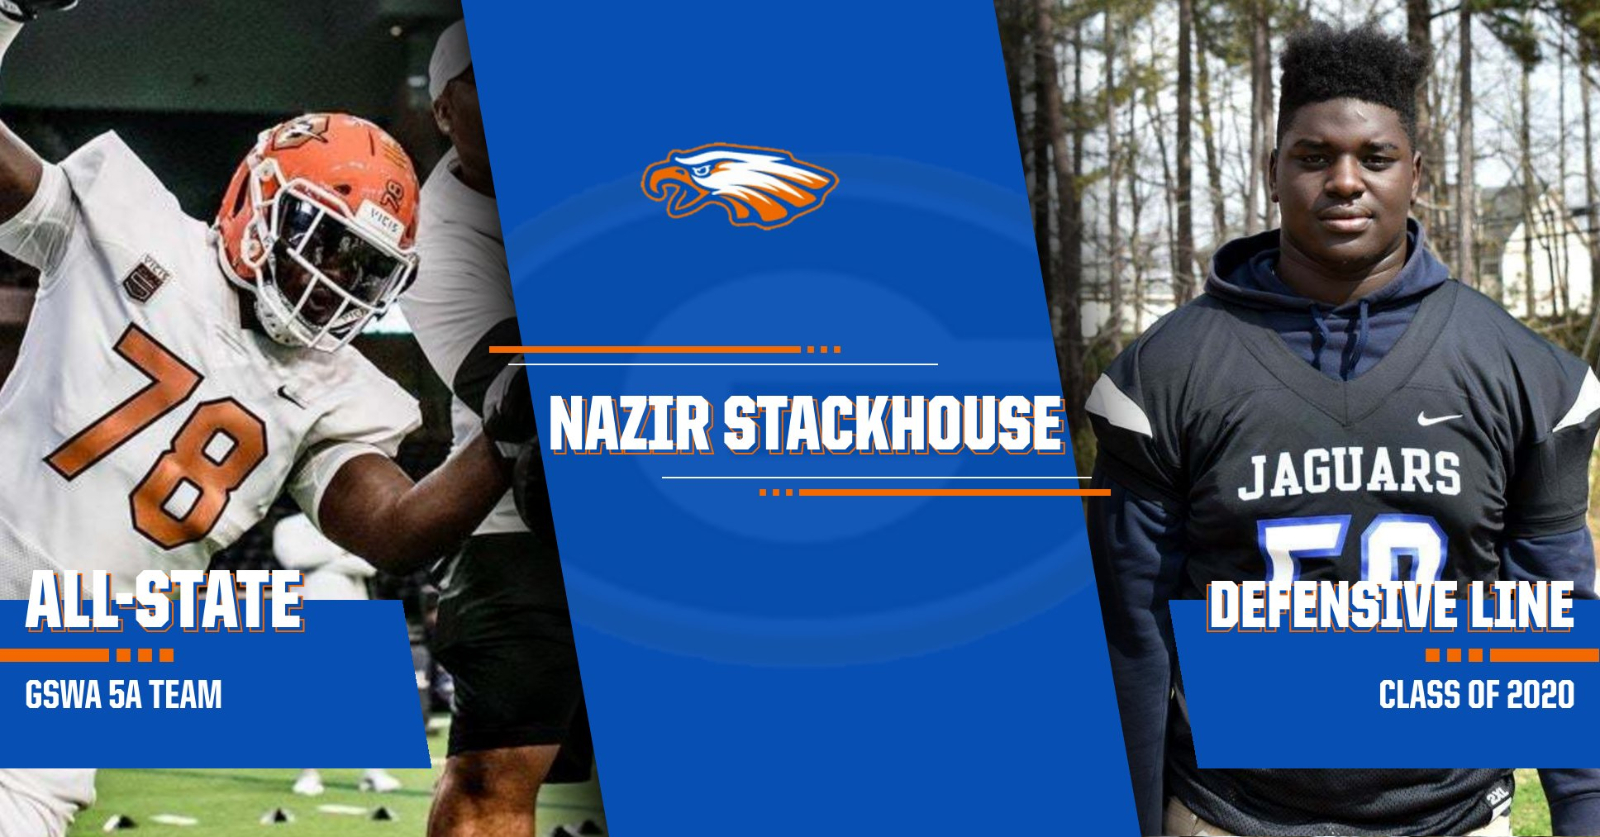 GSWA Honors Nazir Stackhouse